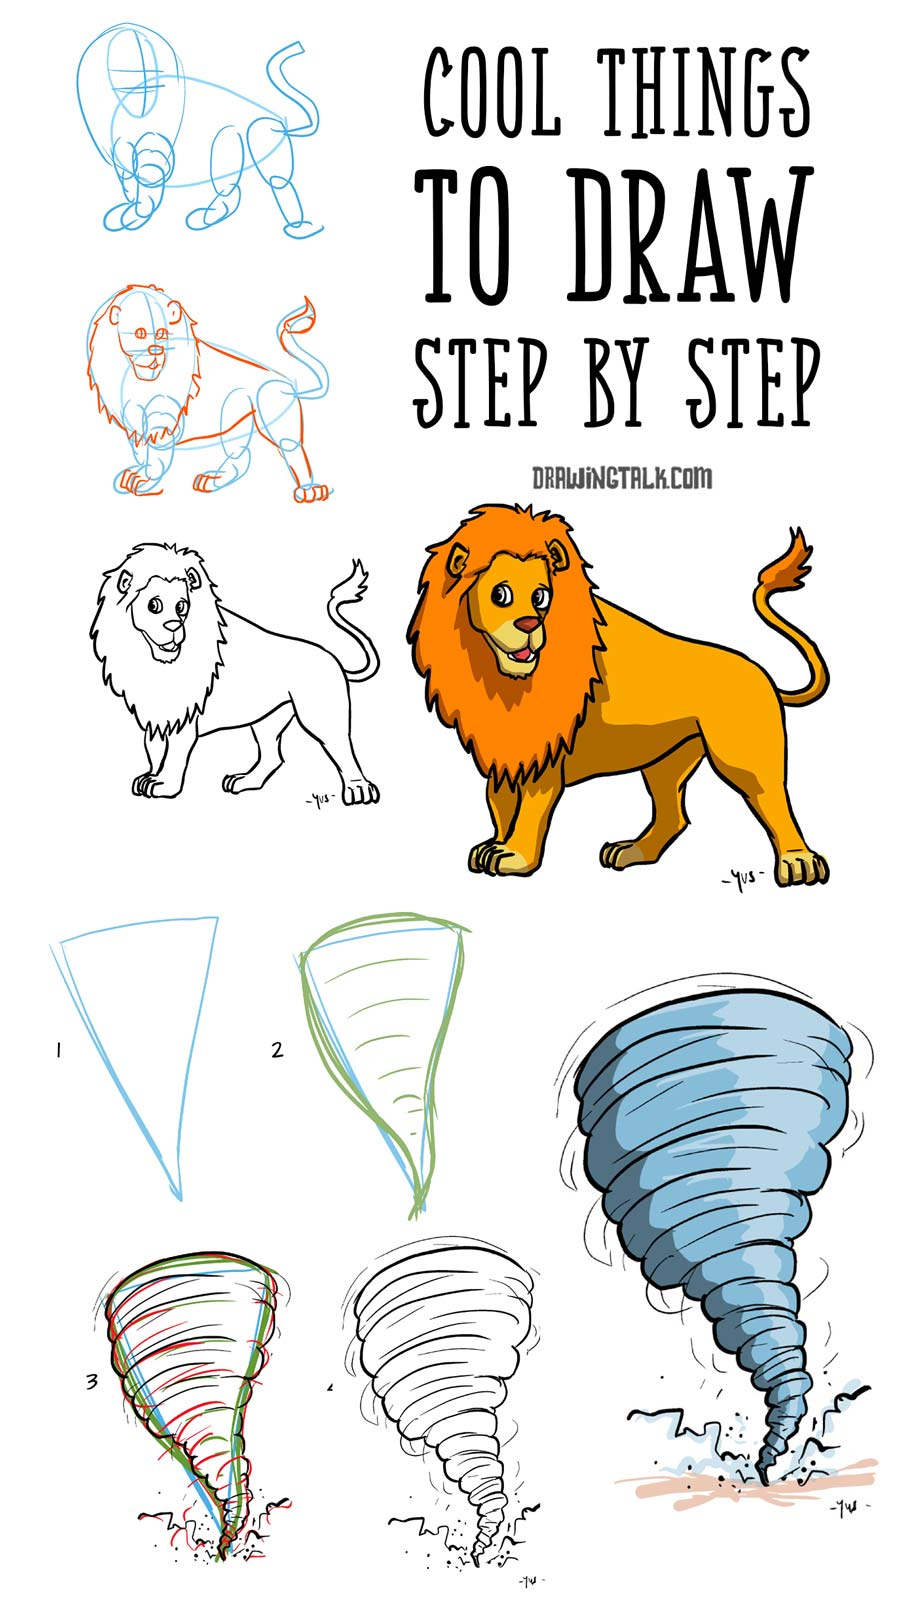 easy steps to draw cool things to draw step by step